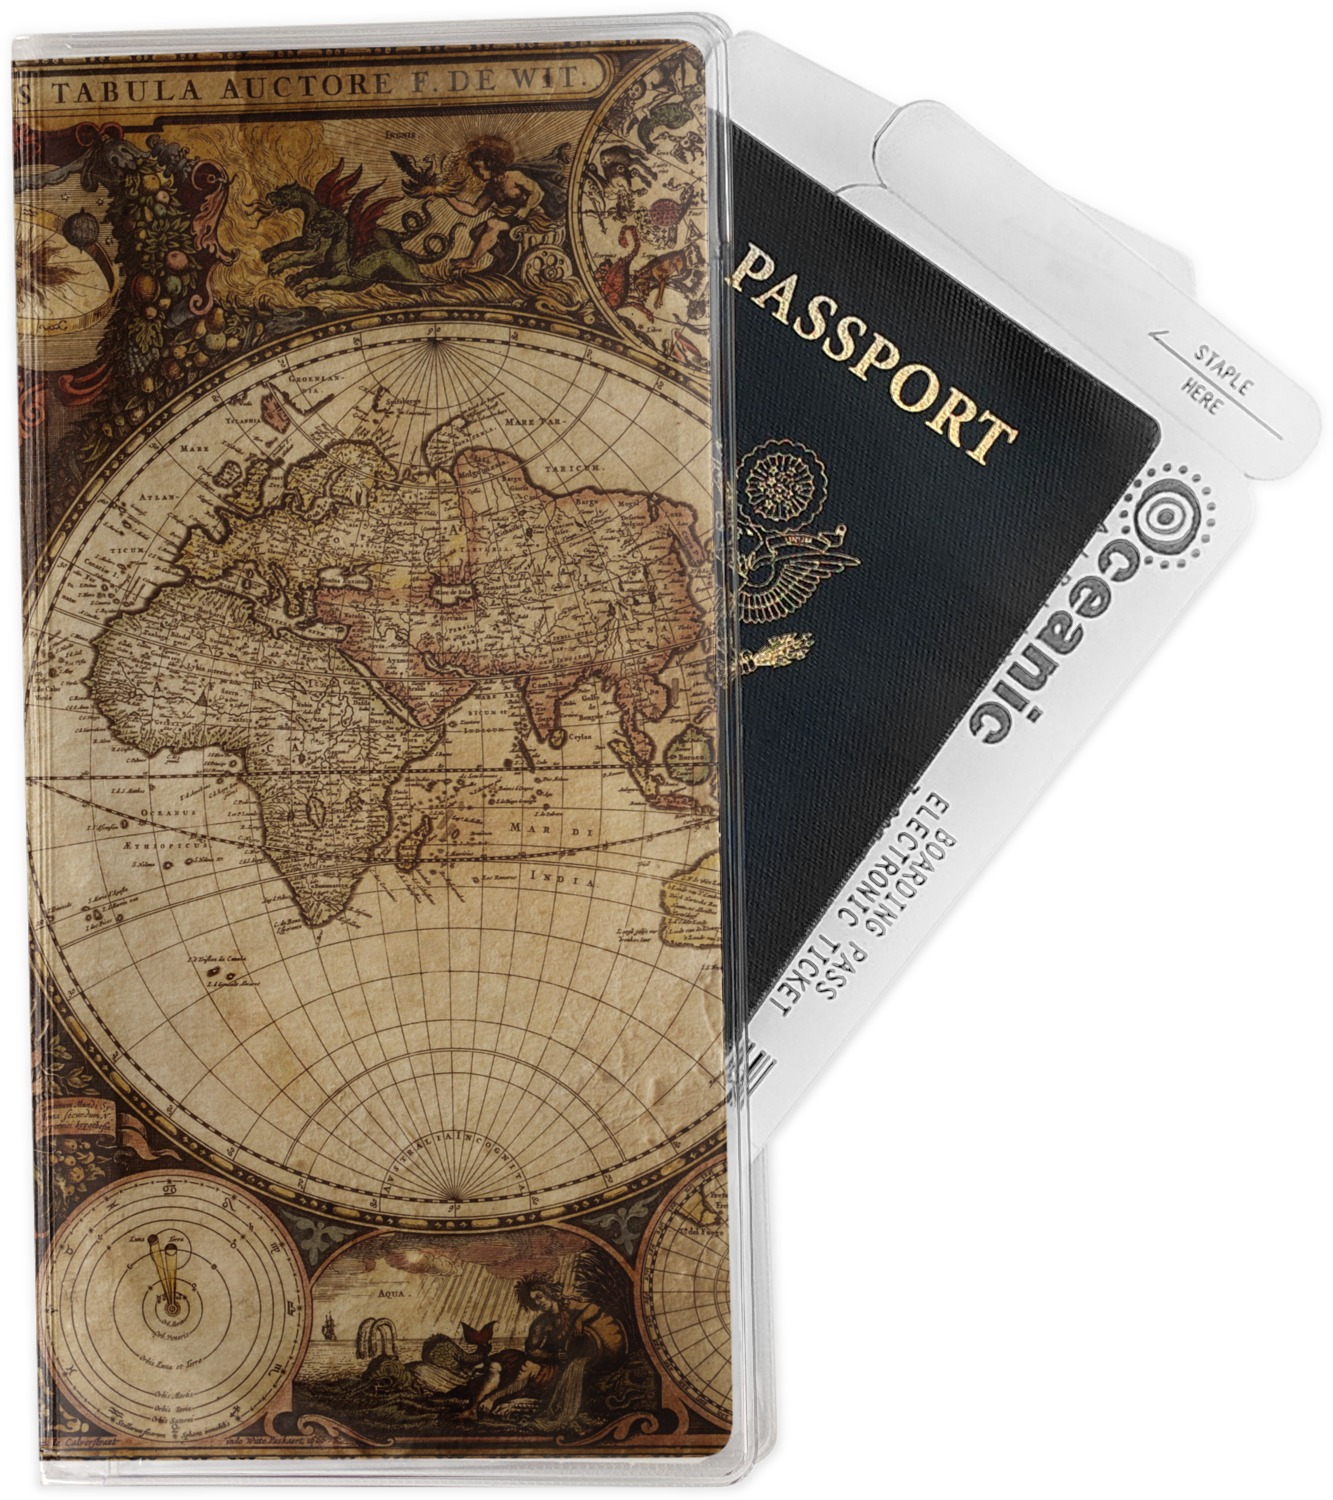 Vintage world map travel document holder youcustomizeit vintage world map travel document holder gumiabroncs Image collections